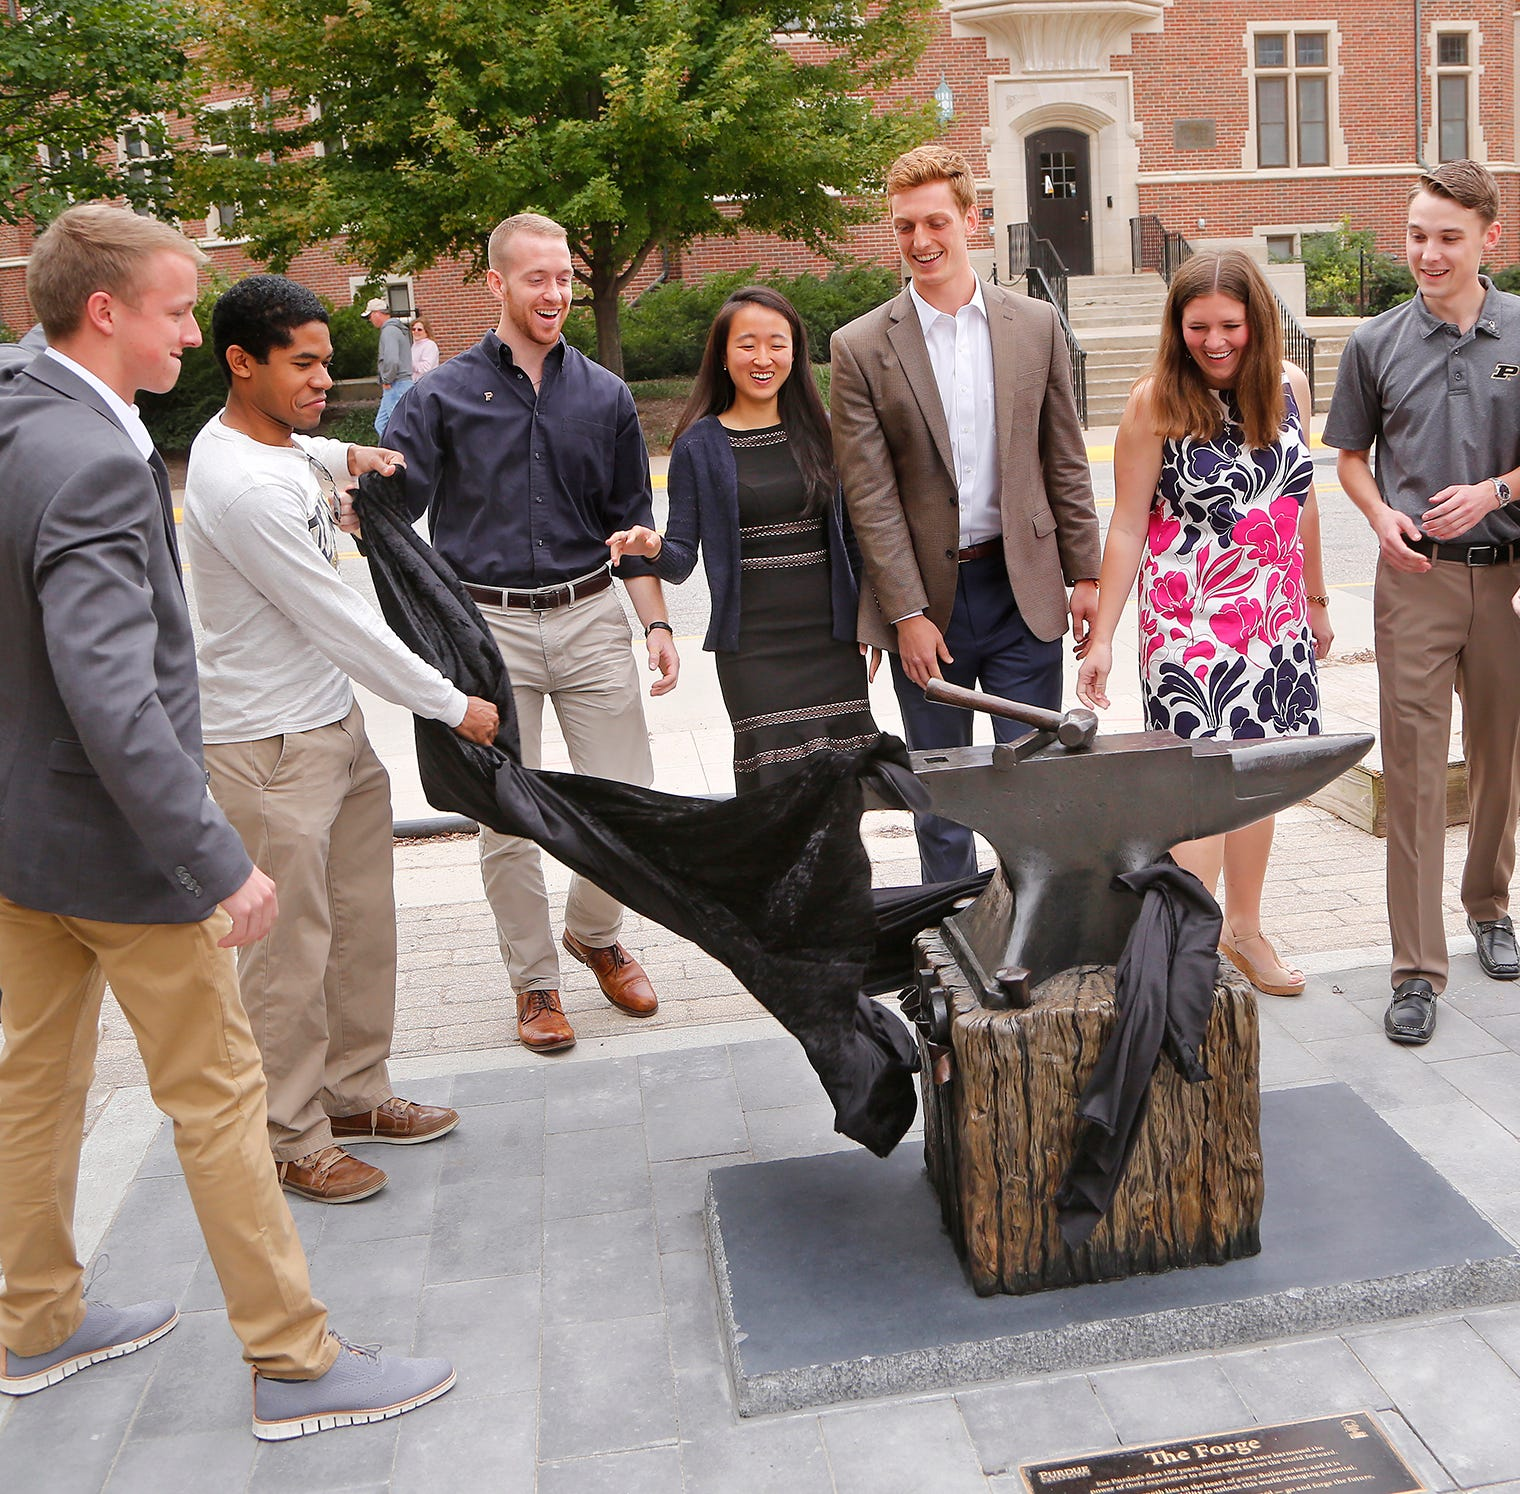 Purdue unveils 'The Forge' sculpture, ready for 150th anniversary selfies